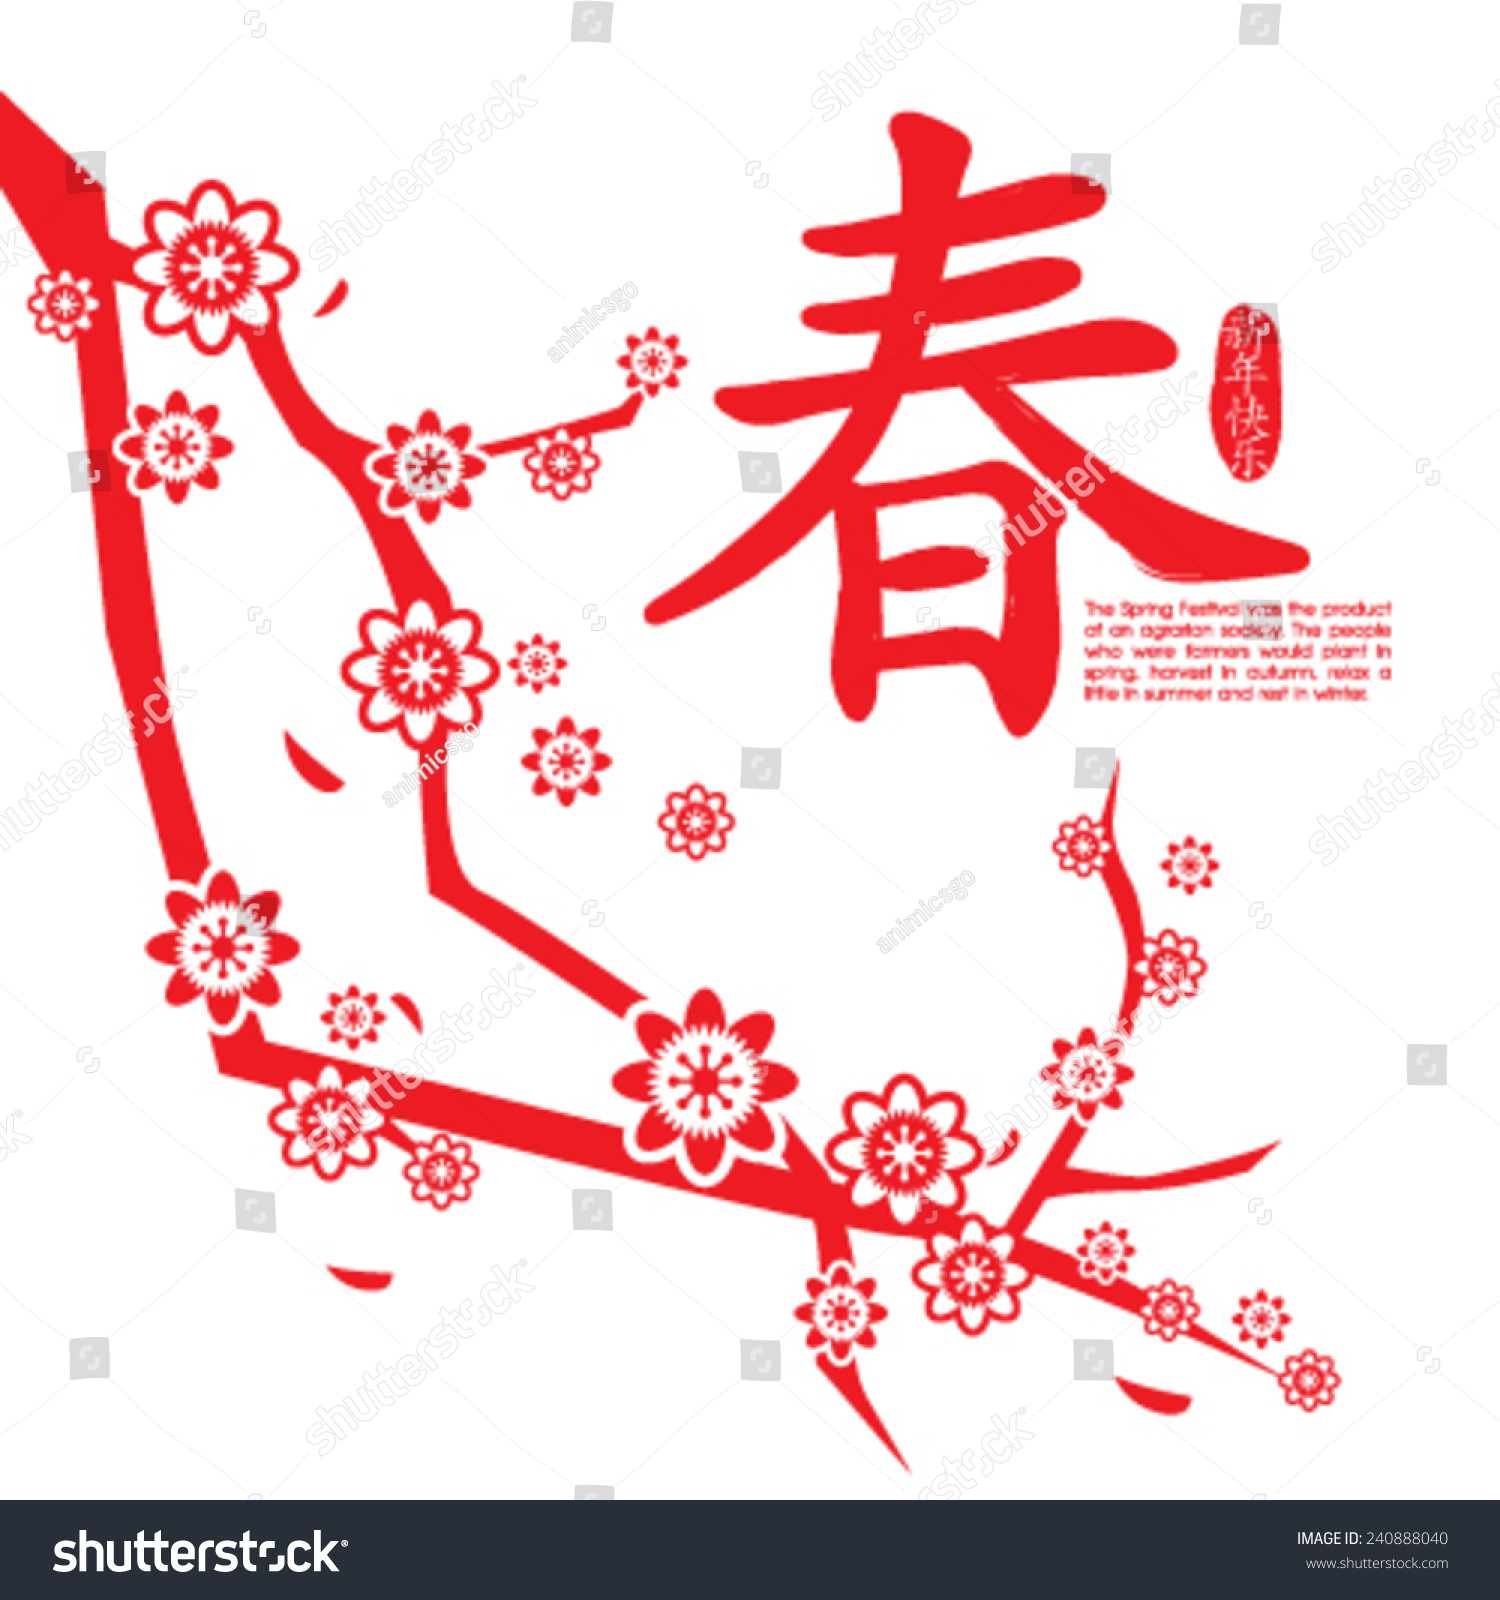 Chinese New Year Card Plum Blossom Stock Vector 240888040 - Shutterstock